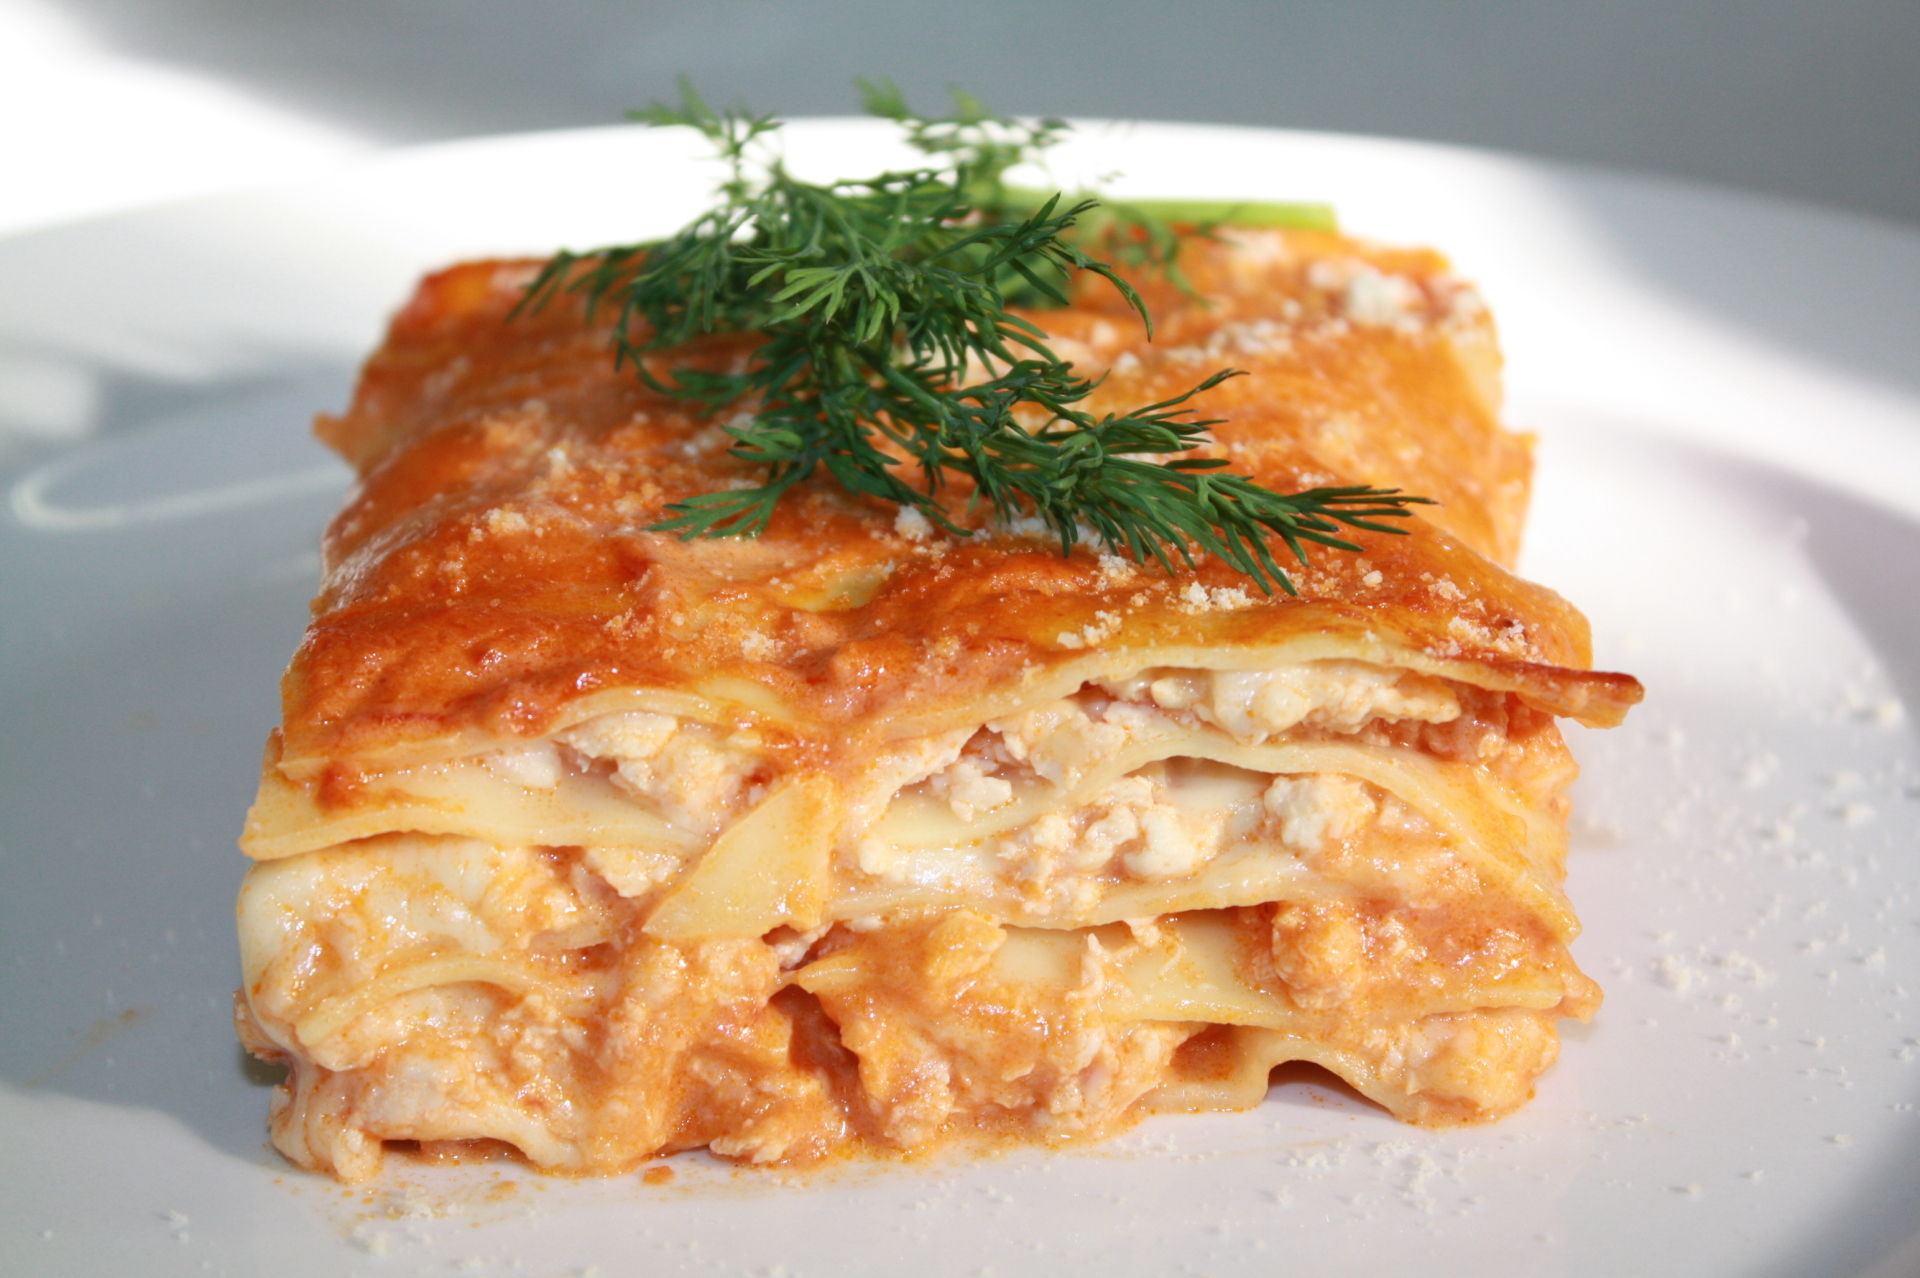 Chicken Rosa Lasagna Price $26 (6-8pcs)